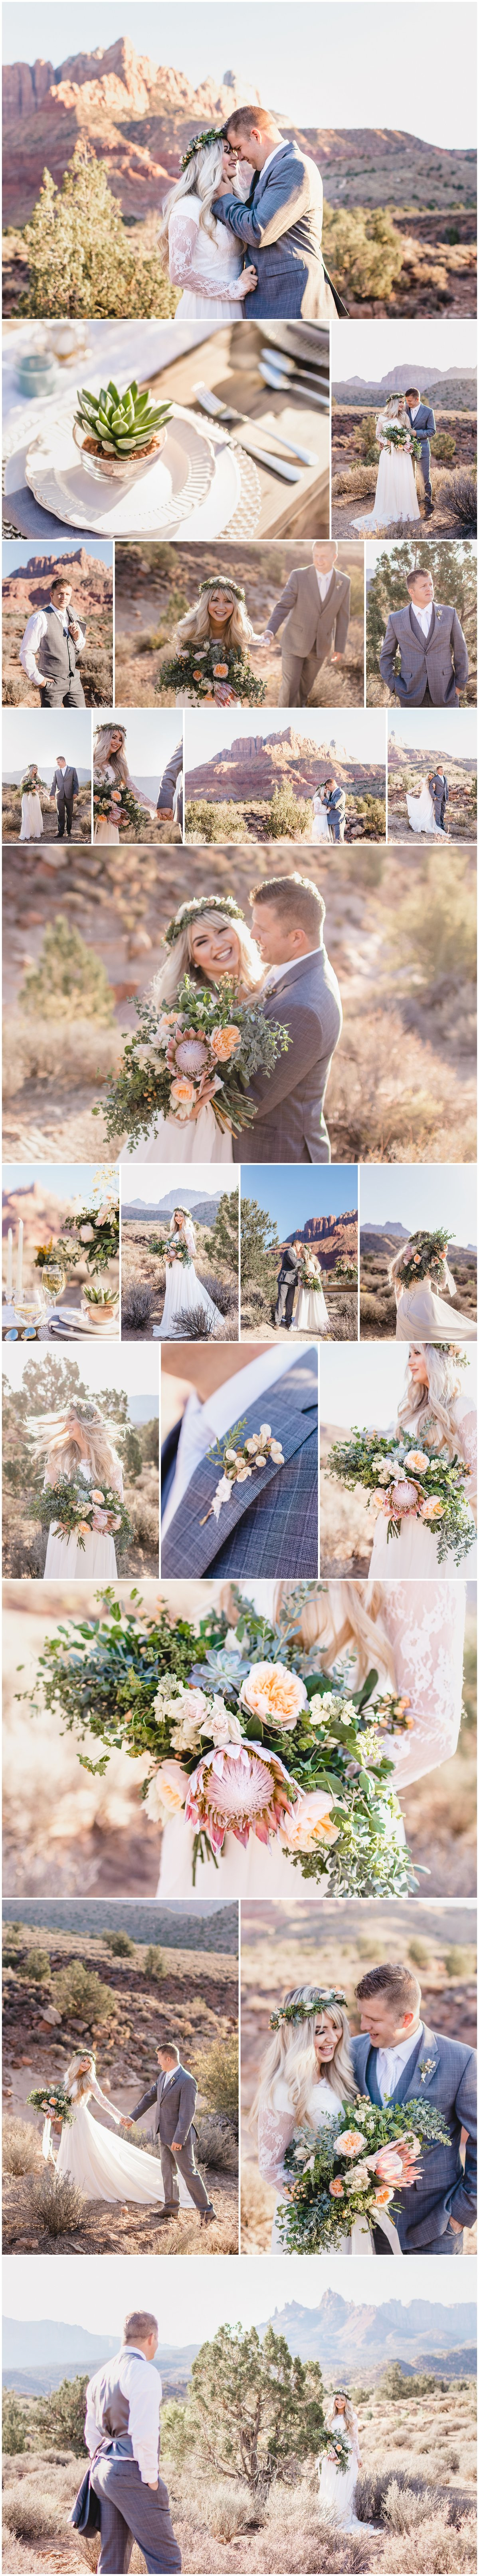 Affordable Utah Wedding Photographer Utah County Life Looks Photography Kylie Hoschouer_0173